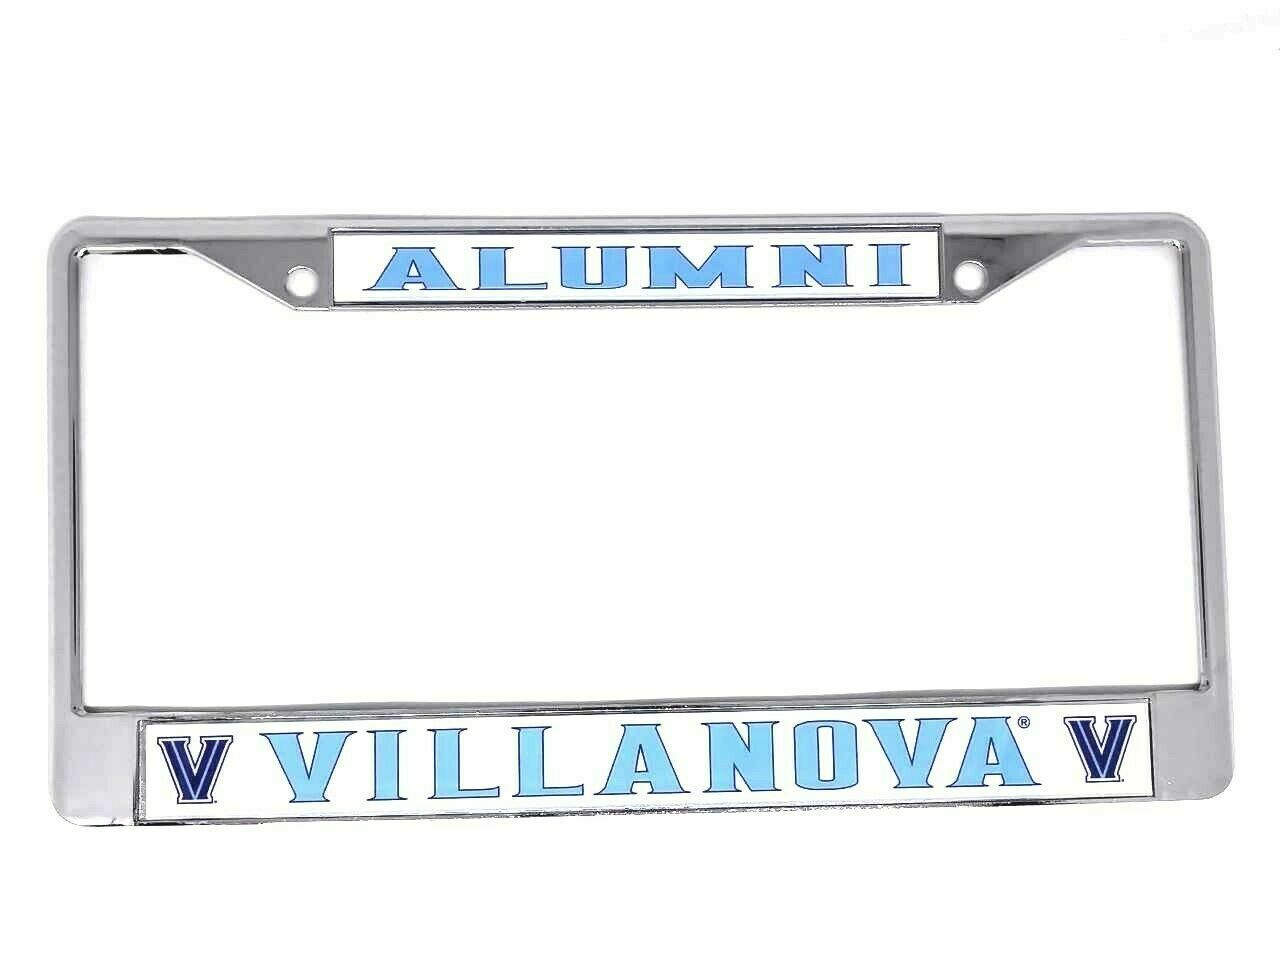 VILLANOVA UNIVERSITY ALUMNI License Plate Frame - $22.00 | PicClick